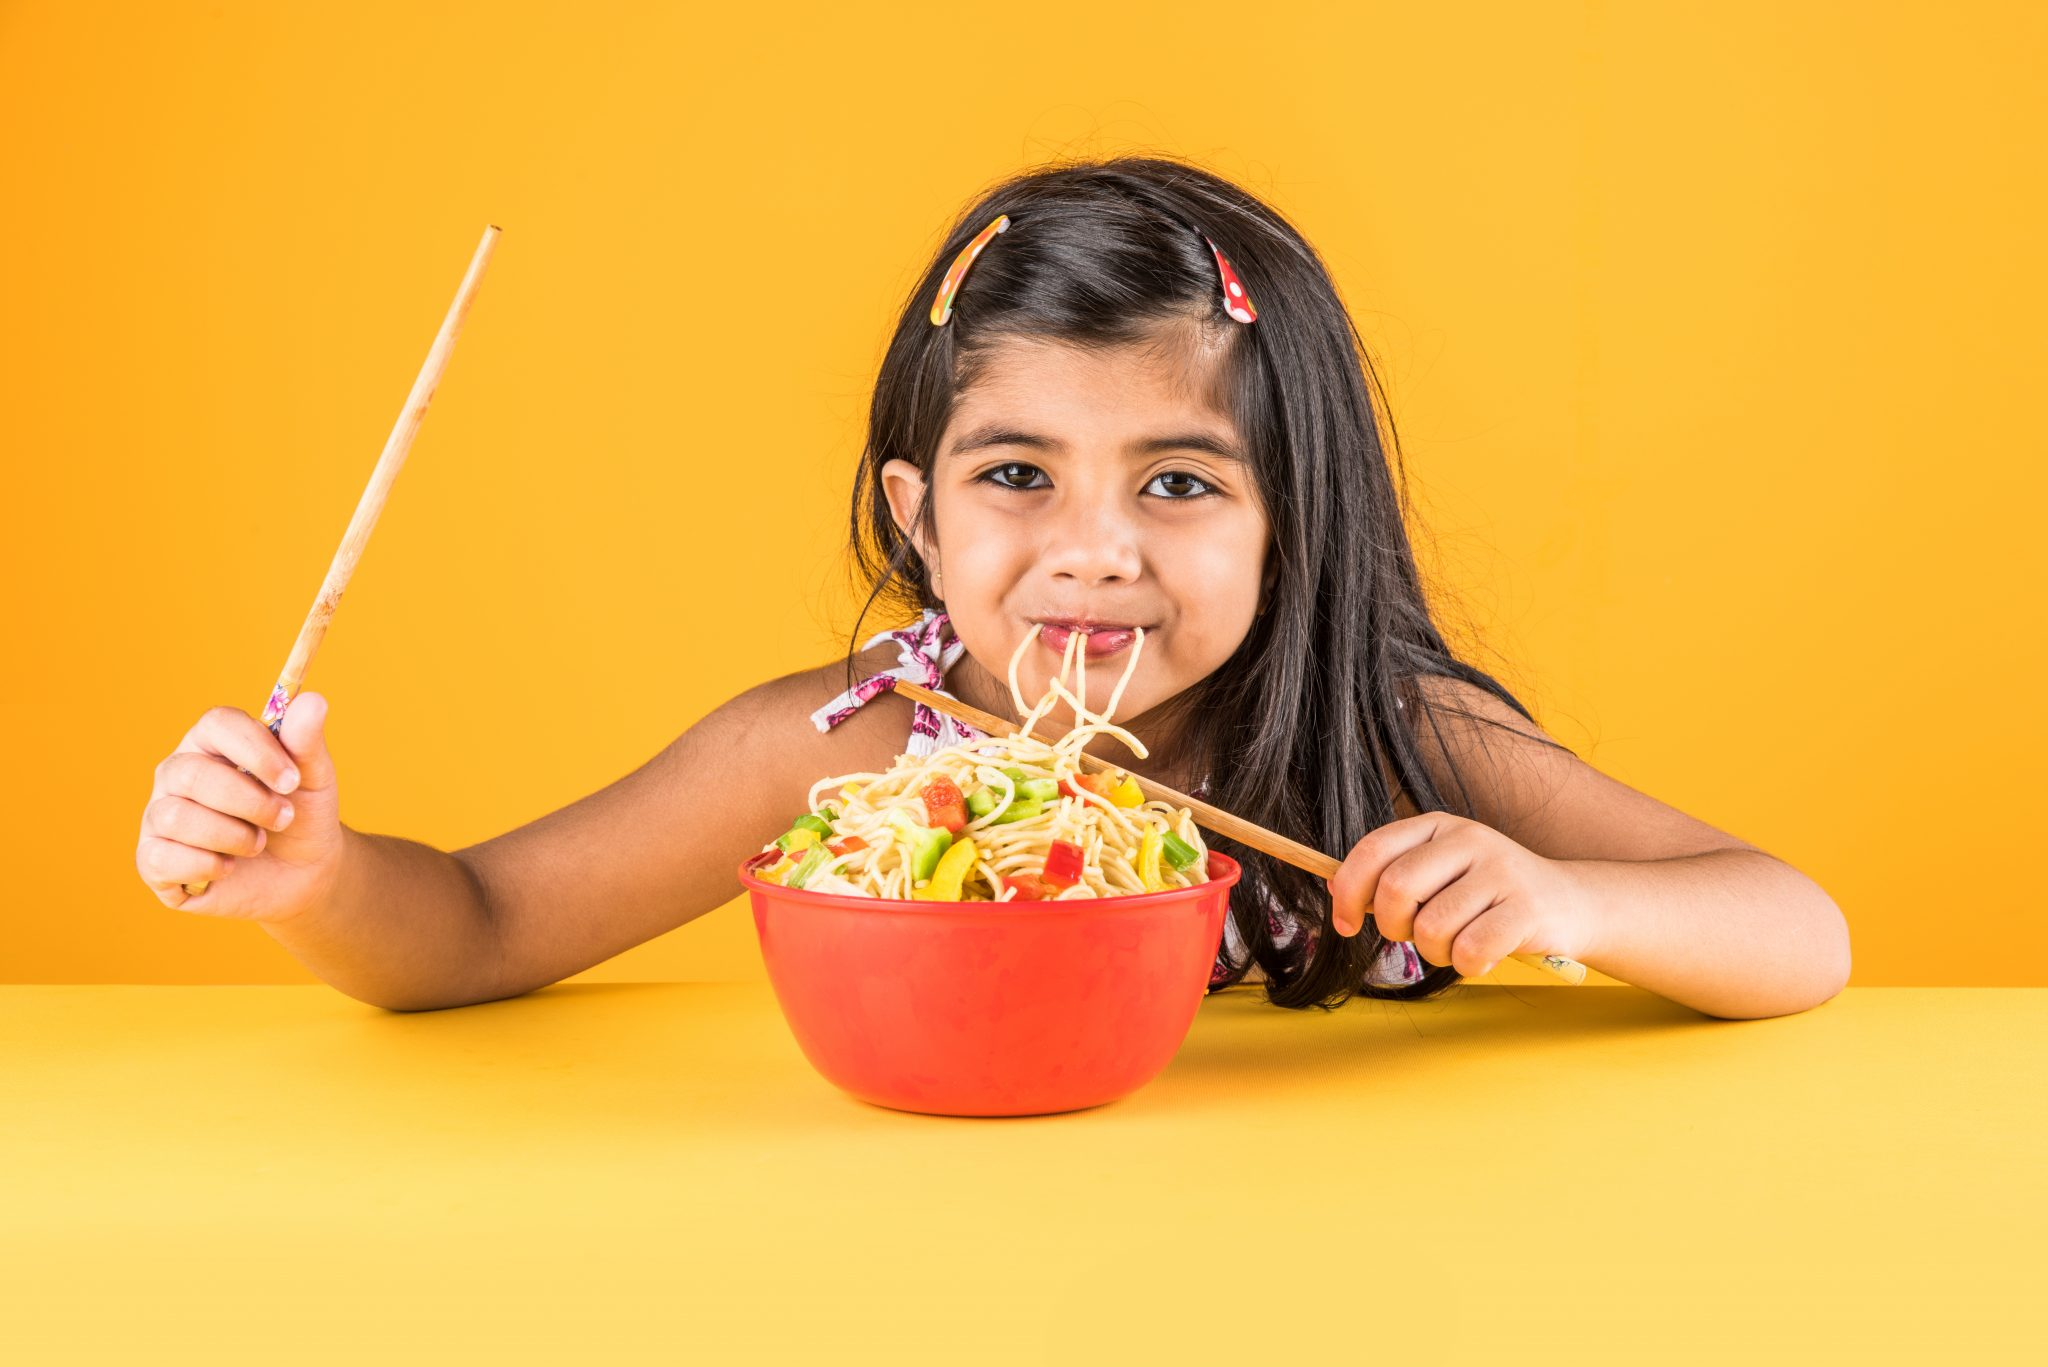 Cute,Little,Indian/asian,Girl,Child,Eating,Yummy,Chinese